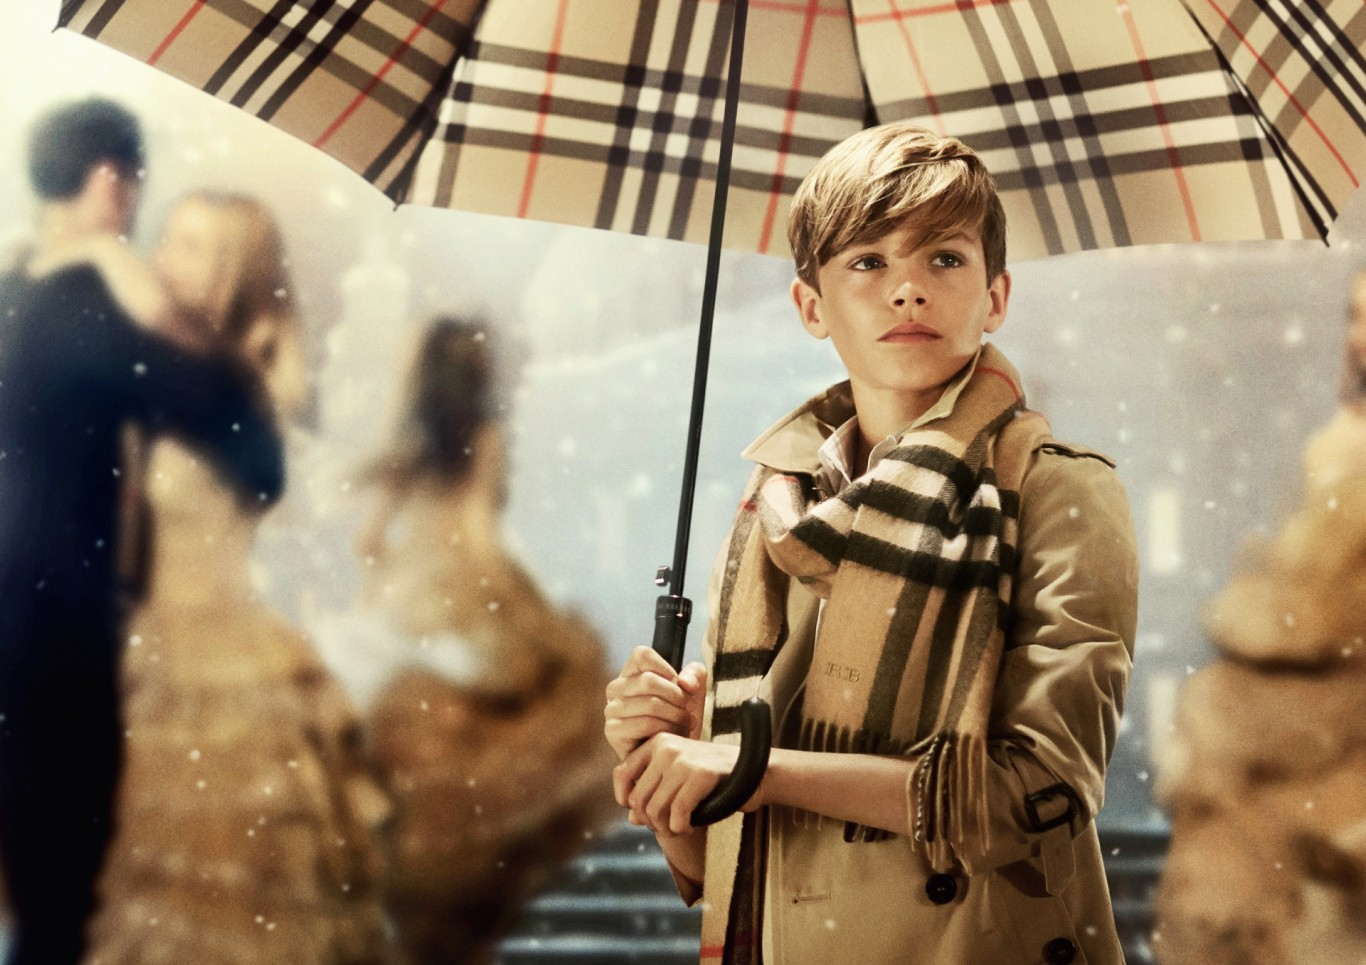 Музыка и видеоролик из рекламы Burberry - From London with Love (Romeo Beckham)